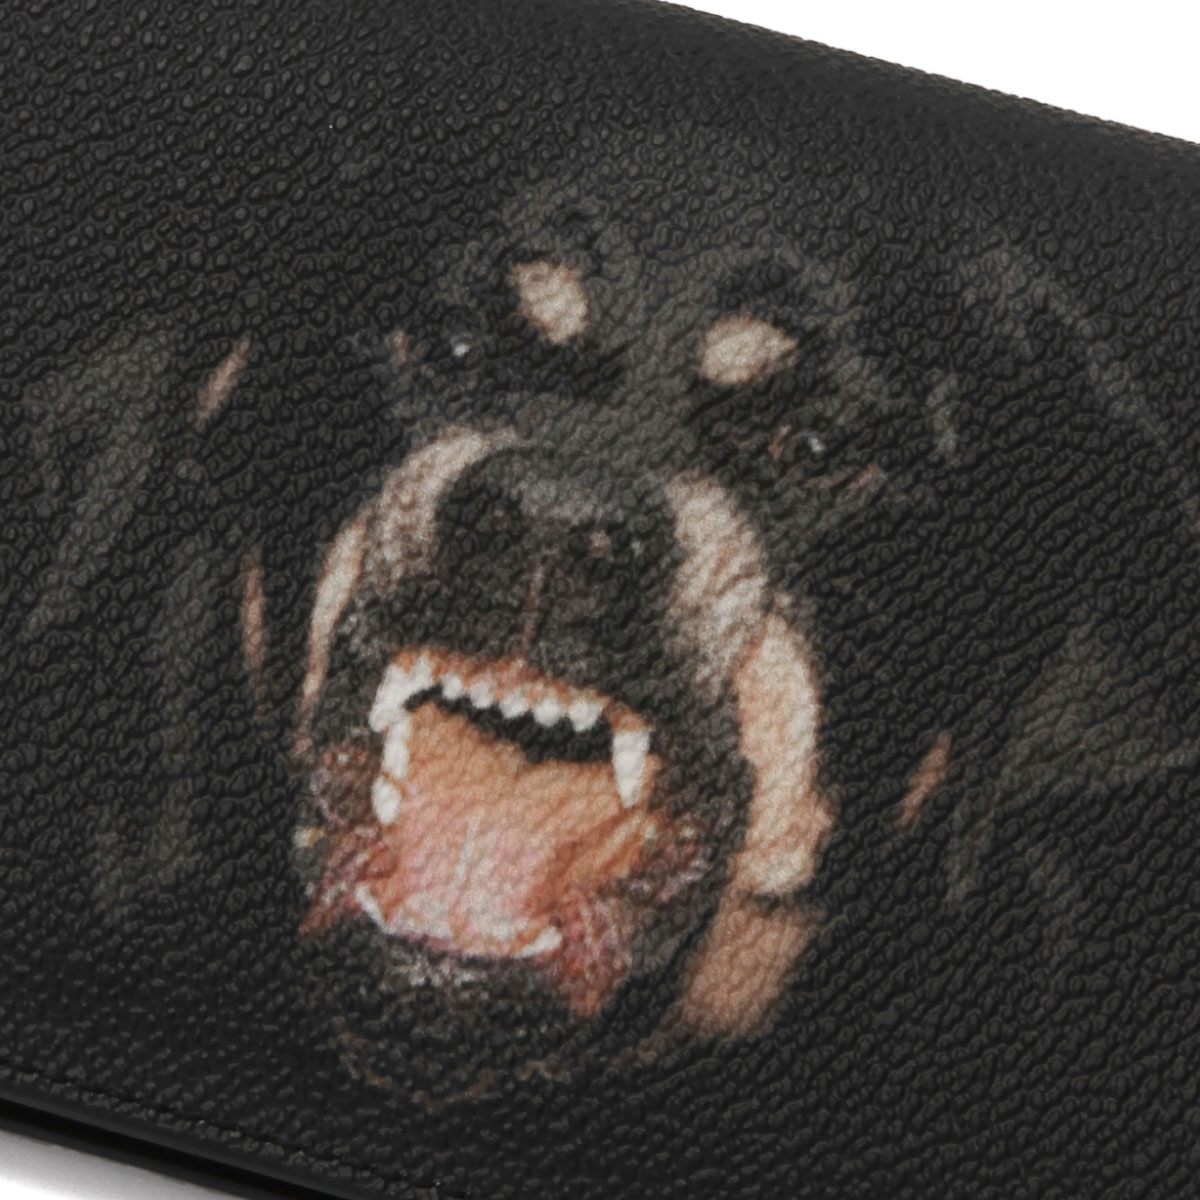 fcf7bf1a8 ... Givenchy GIVENCHY wallet men BK06030337 960 Rottweiler folio long  wallet MULTICOLORED black ...